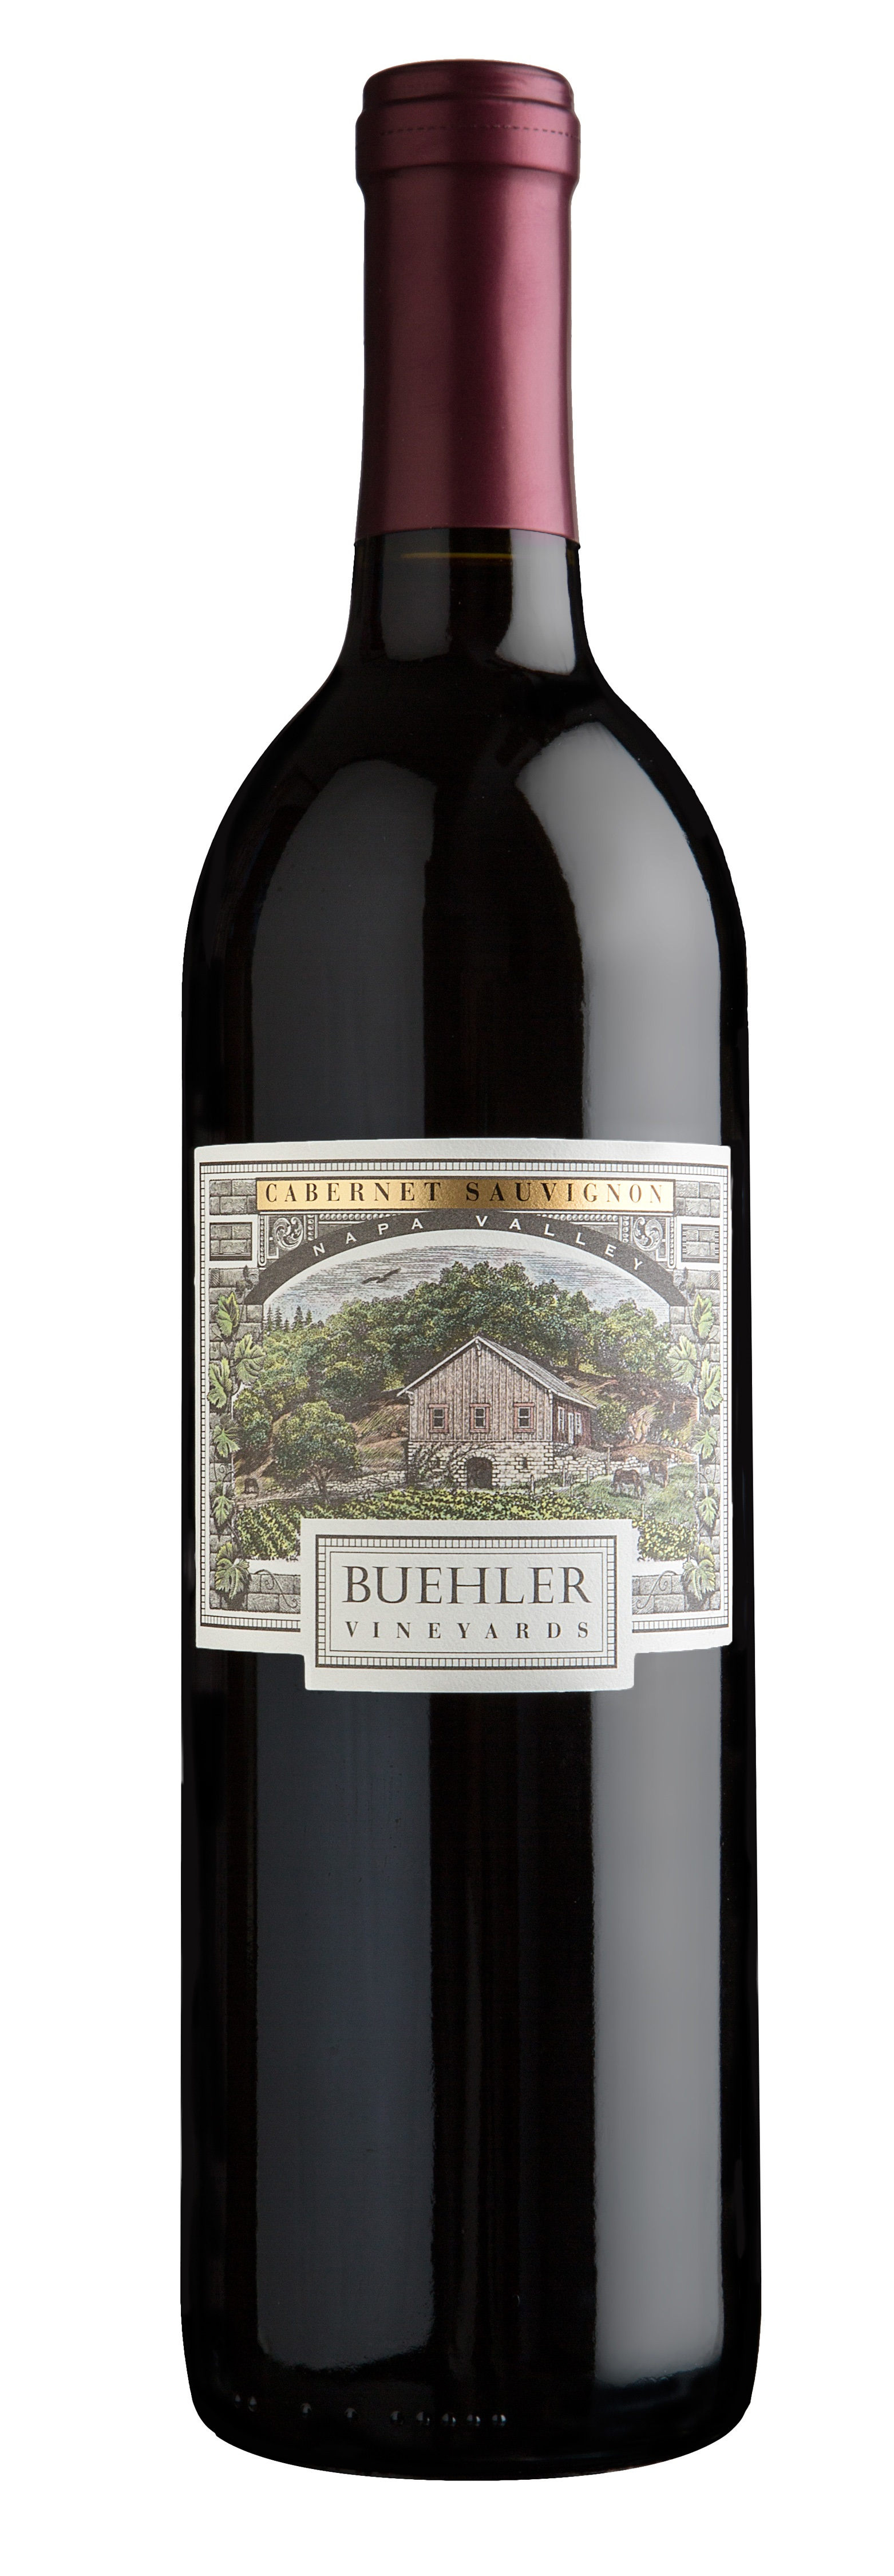 Product Image for 2018 NAPA VALLEY CABERNET SAUVIGNON